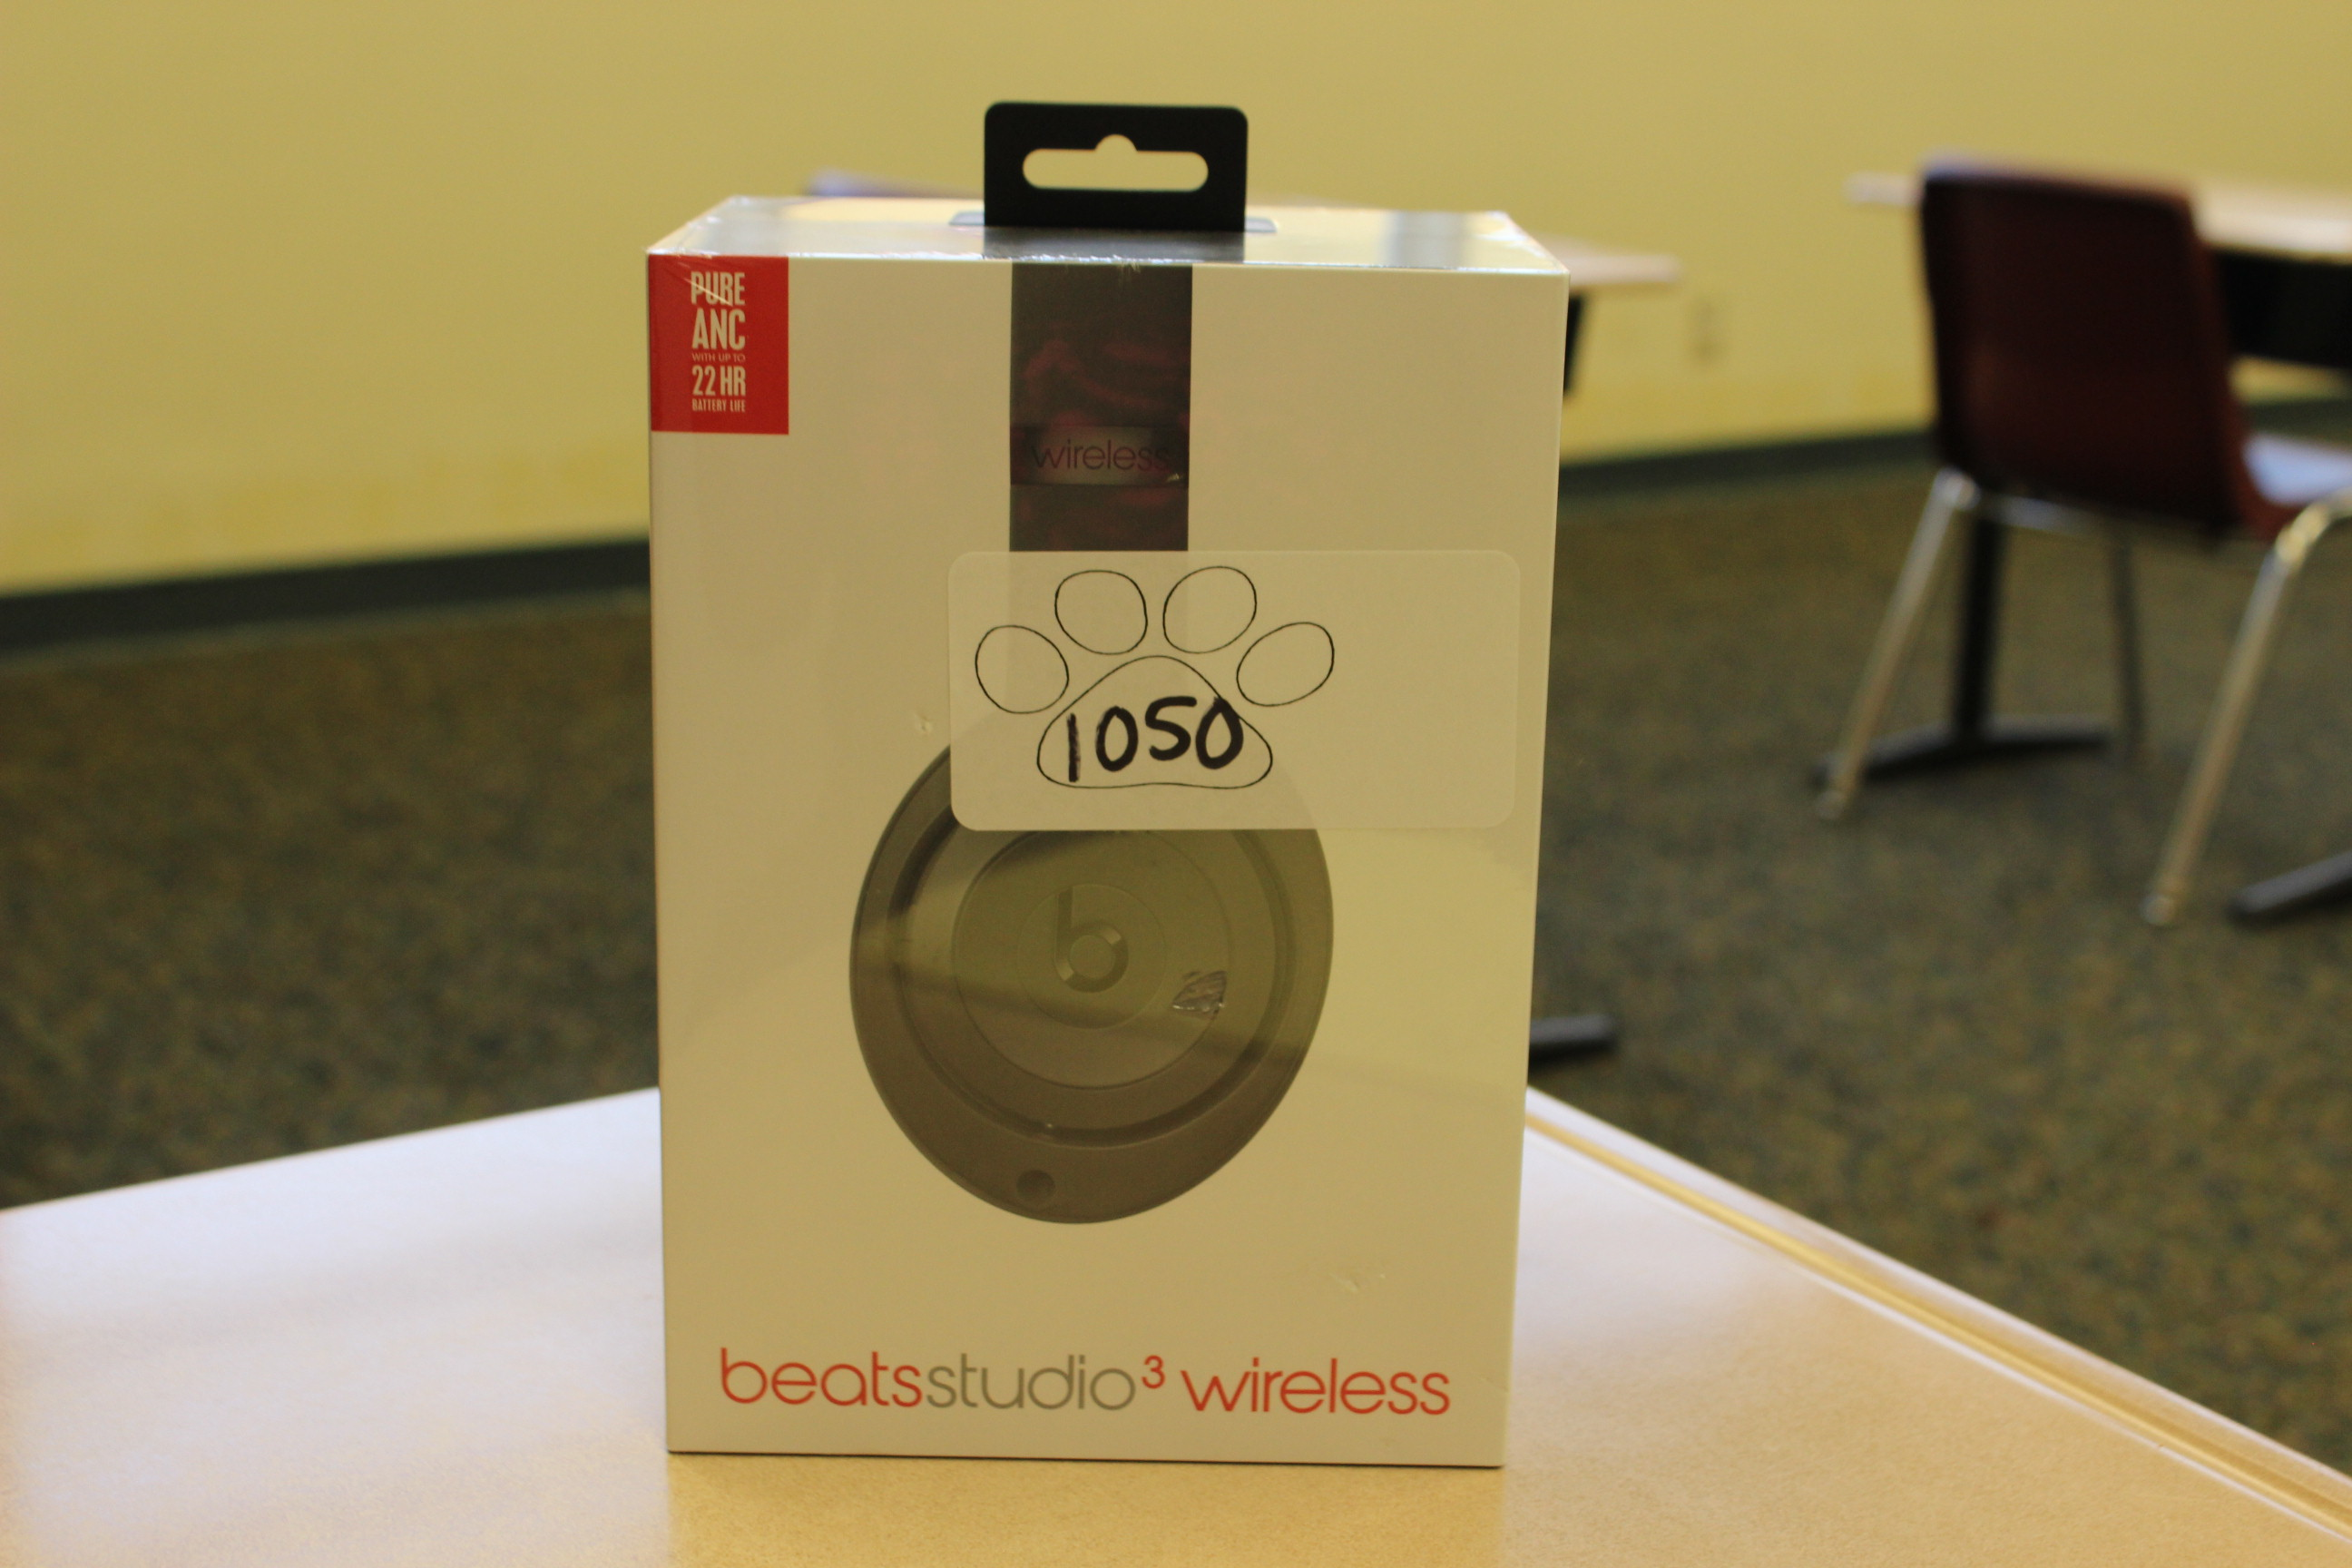 1050 Beats Wireless Headphones